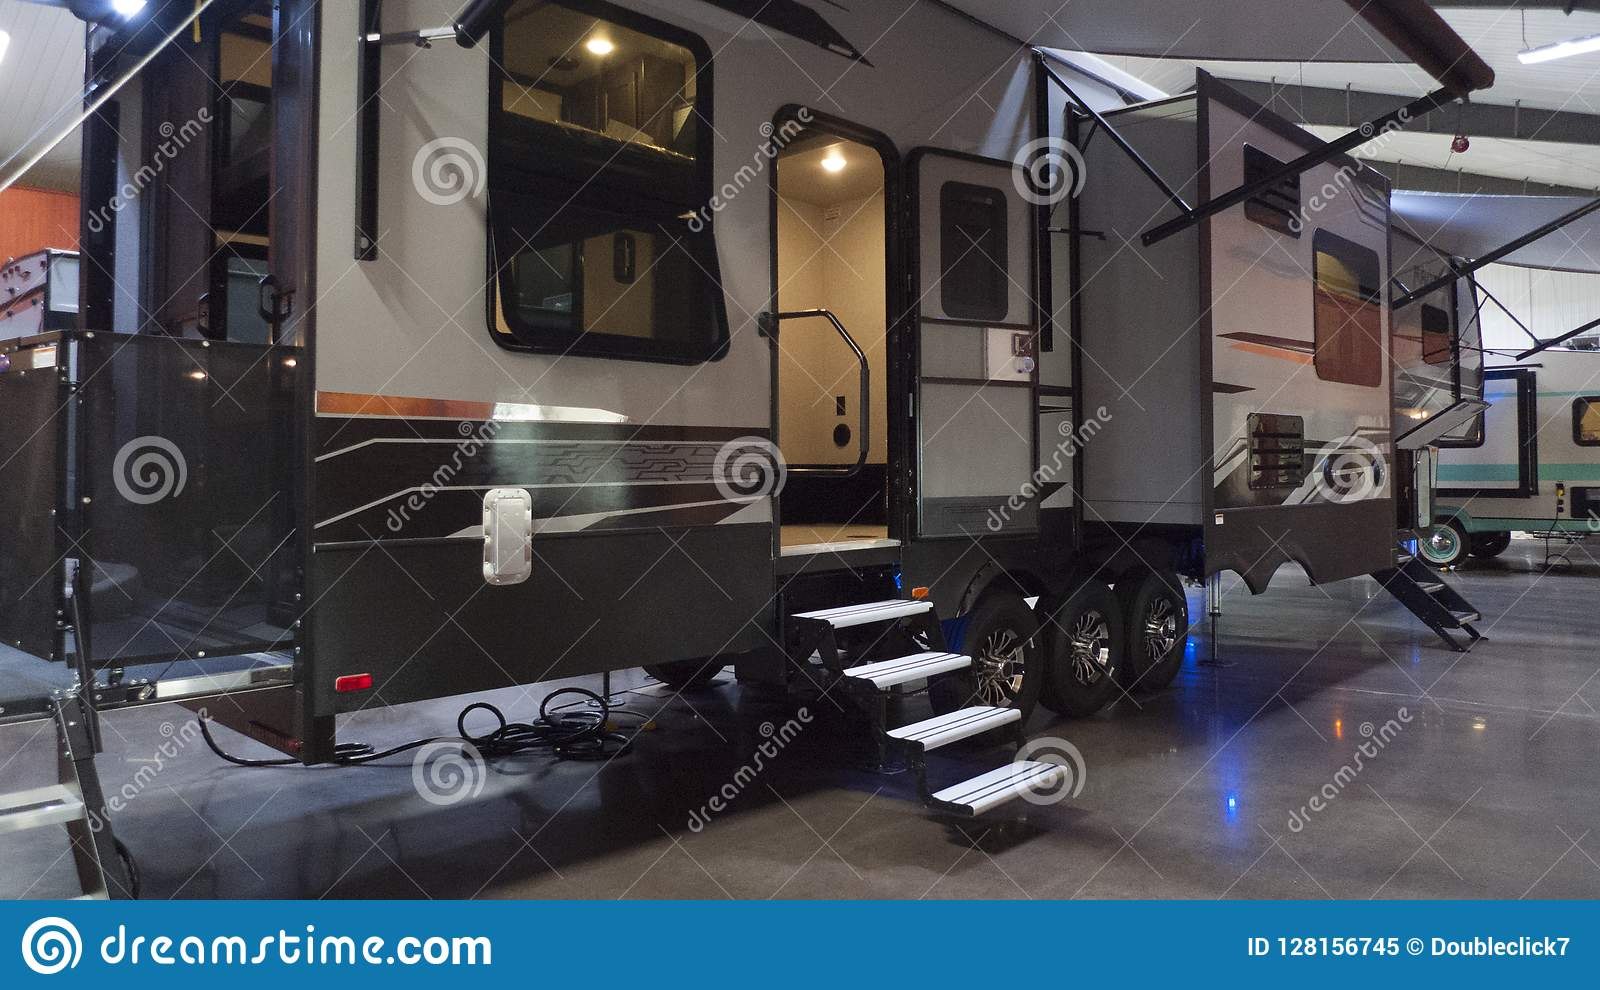 Toy Hauler RV Camper In Showroom Editorial Image - Image of